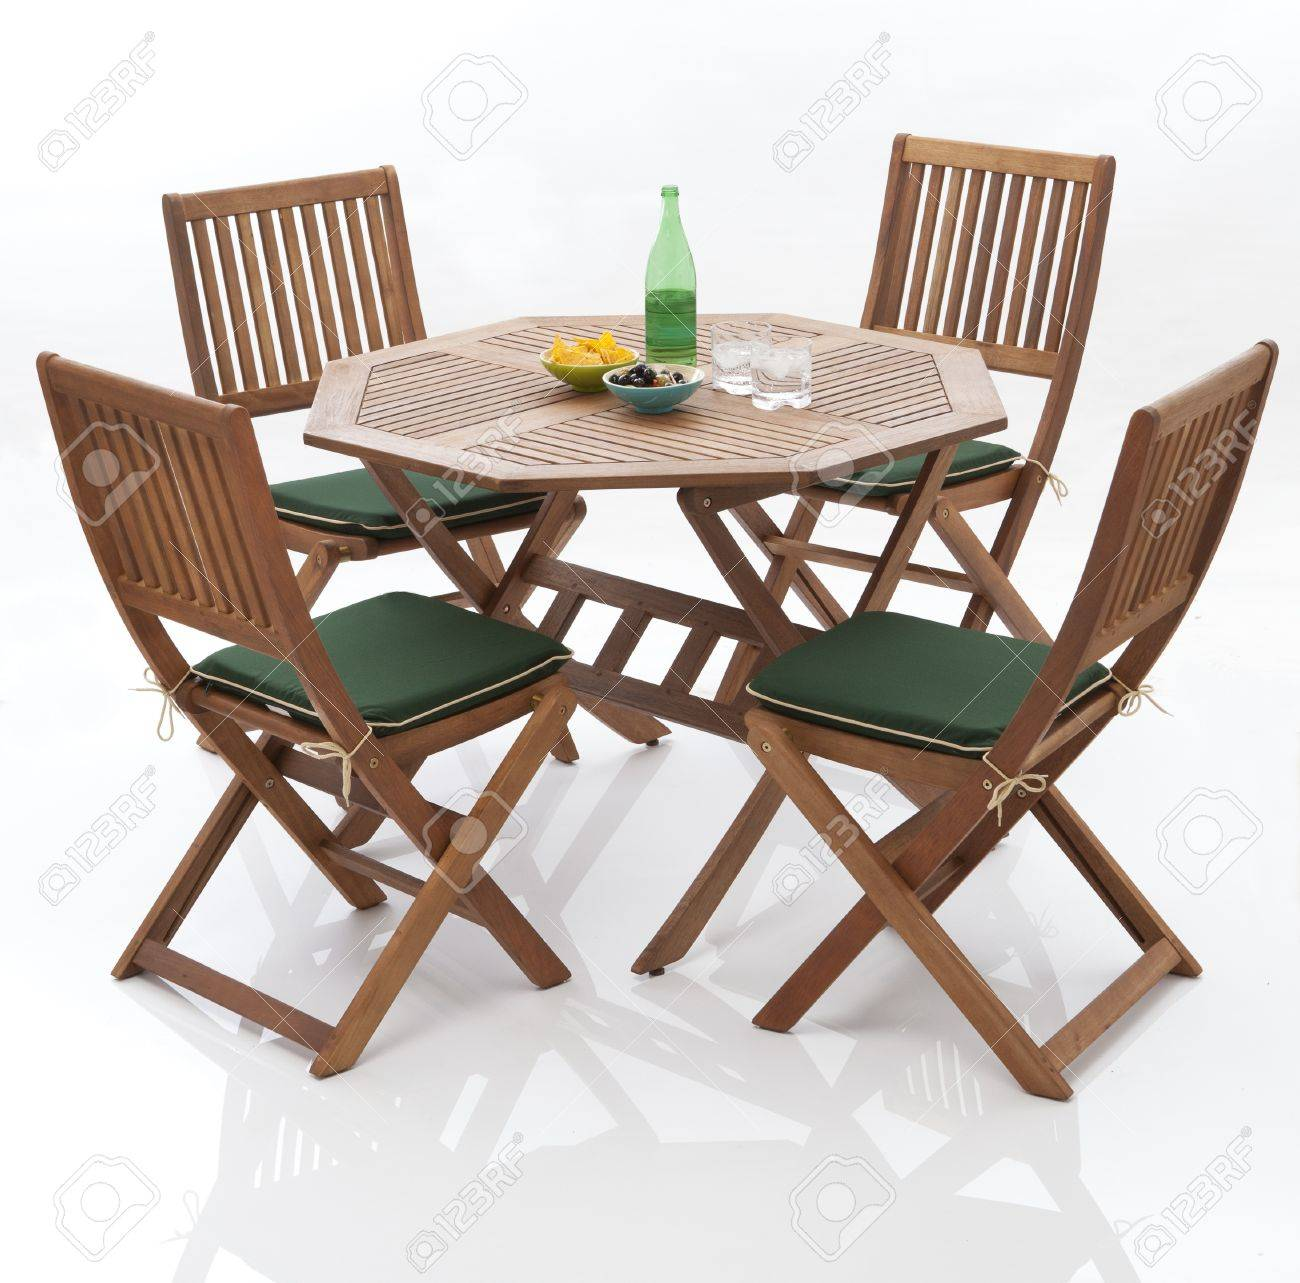 garden table and chairs on isolated white background stock photo